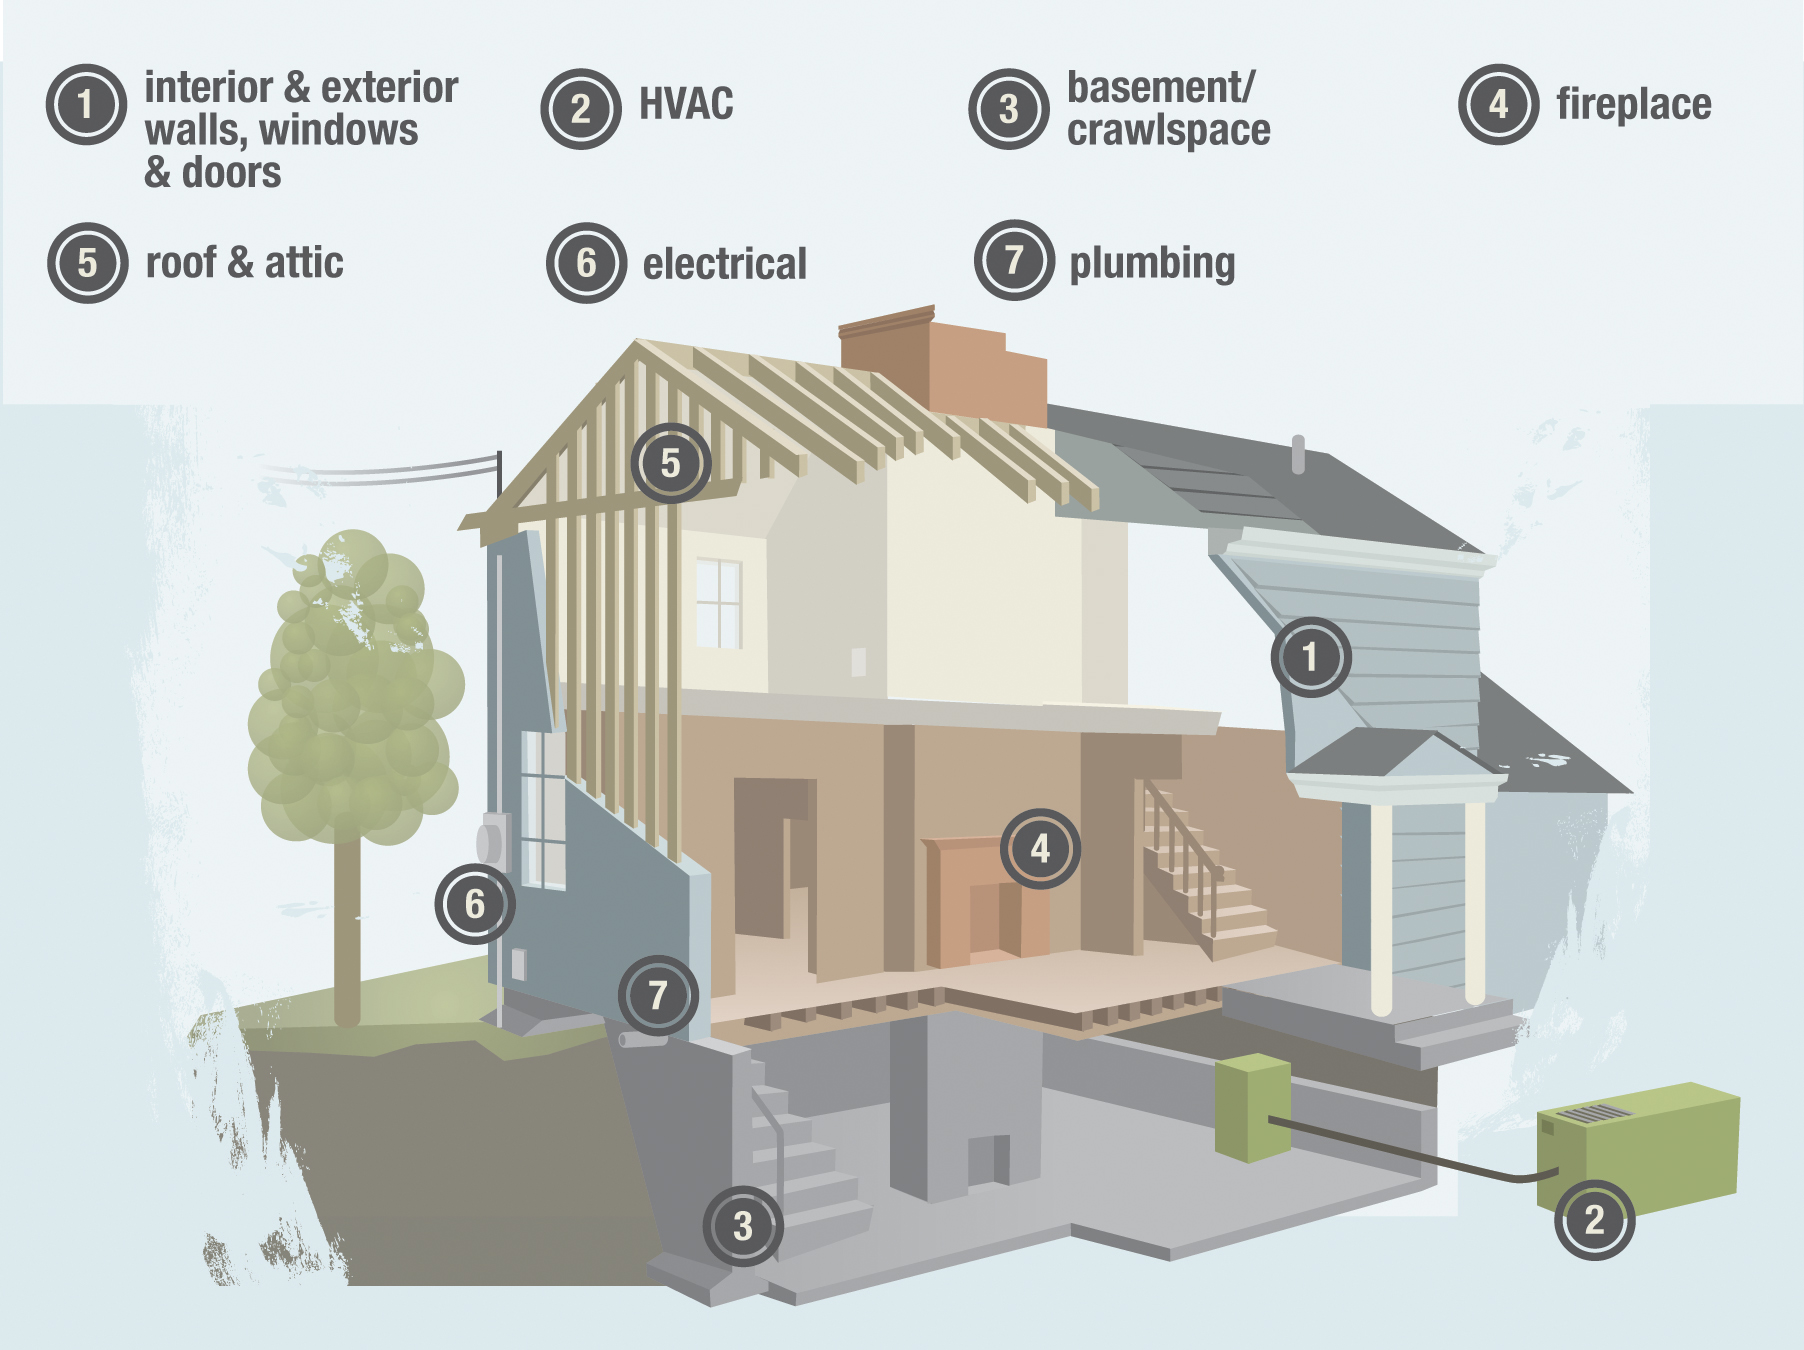 The Main Systems of a House and Home Inspection Components.